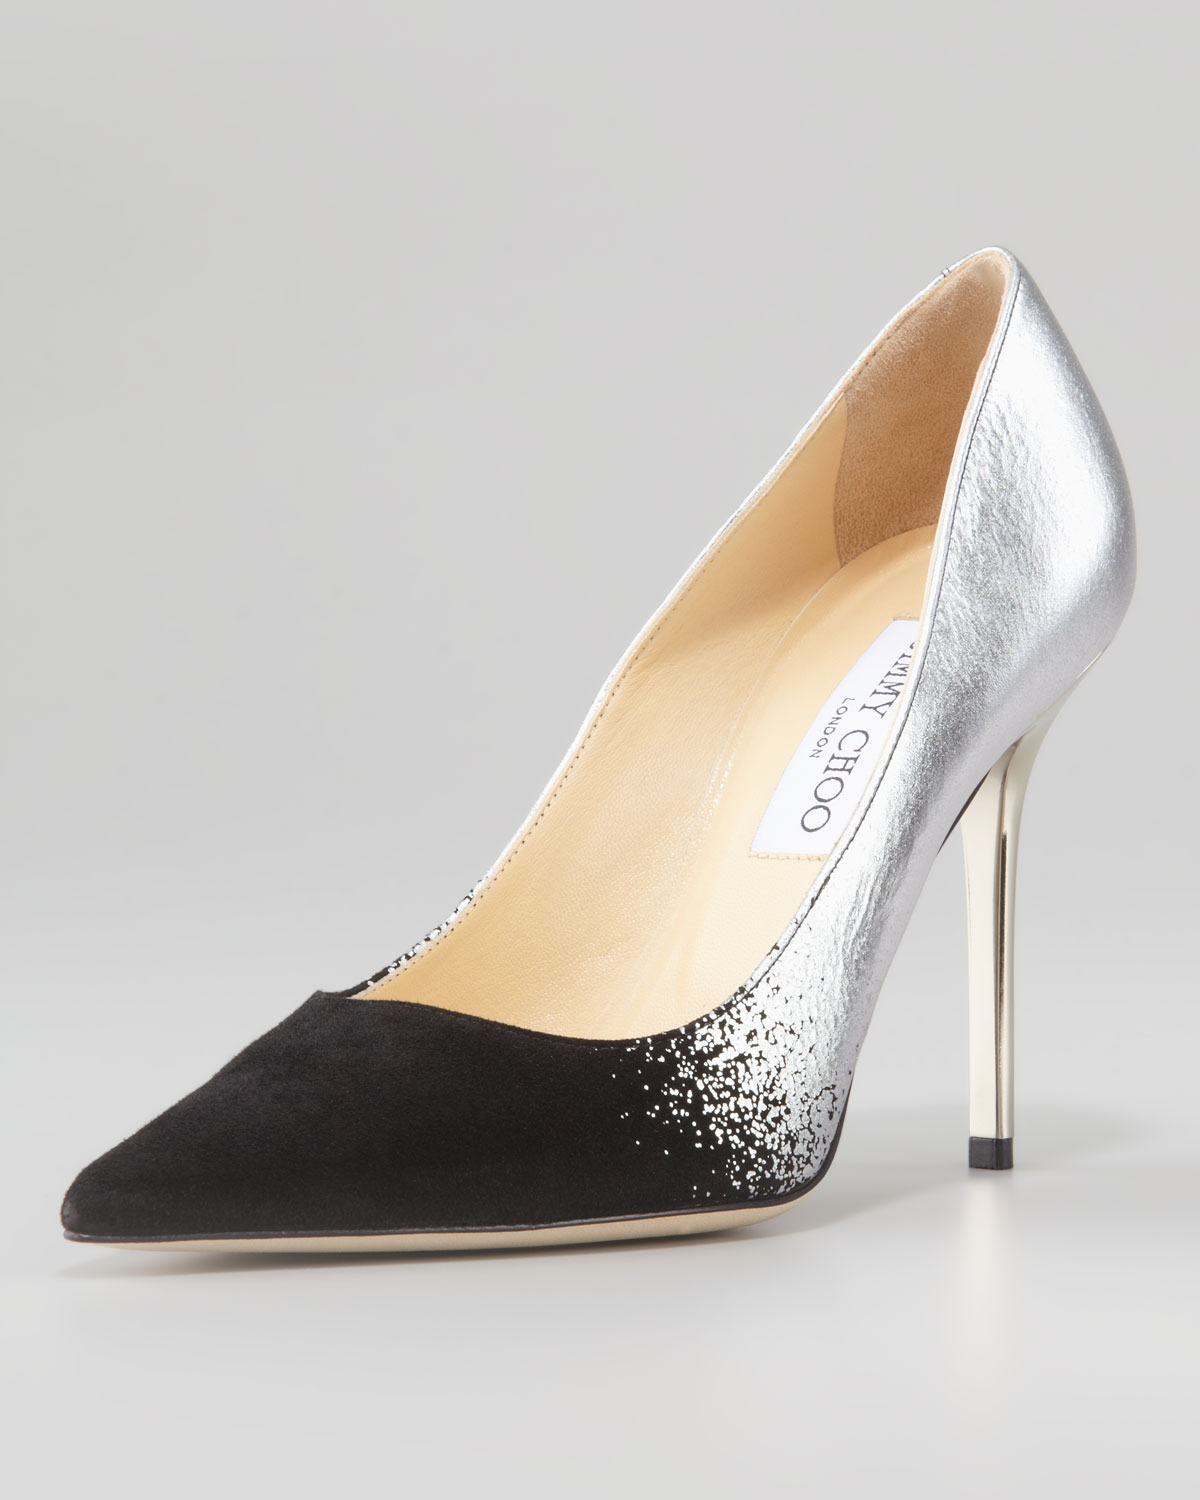 Jimmy Choo Abel Shoes Review